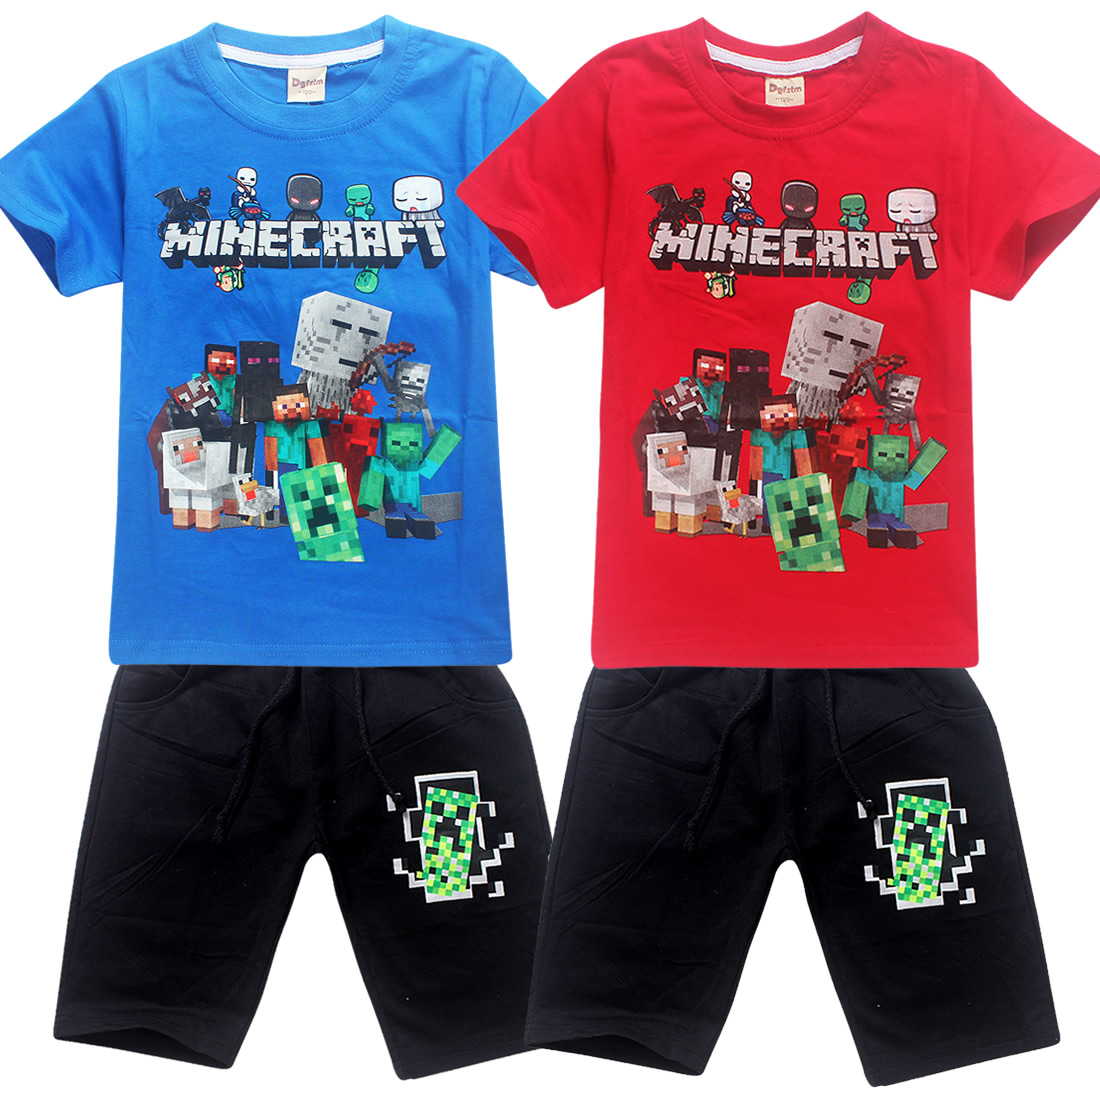 2018 New Summer T-shirt + Shorts 2pcs Suit Minecraft Short Shirt Casual T Shirt+pant Baby Set Kids Baby Boys Clothes Set Tops fashion baby girl t shirt set cotton heart print shirt hole denim cropped trousers casual polka dot children clothing set